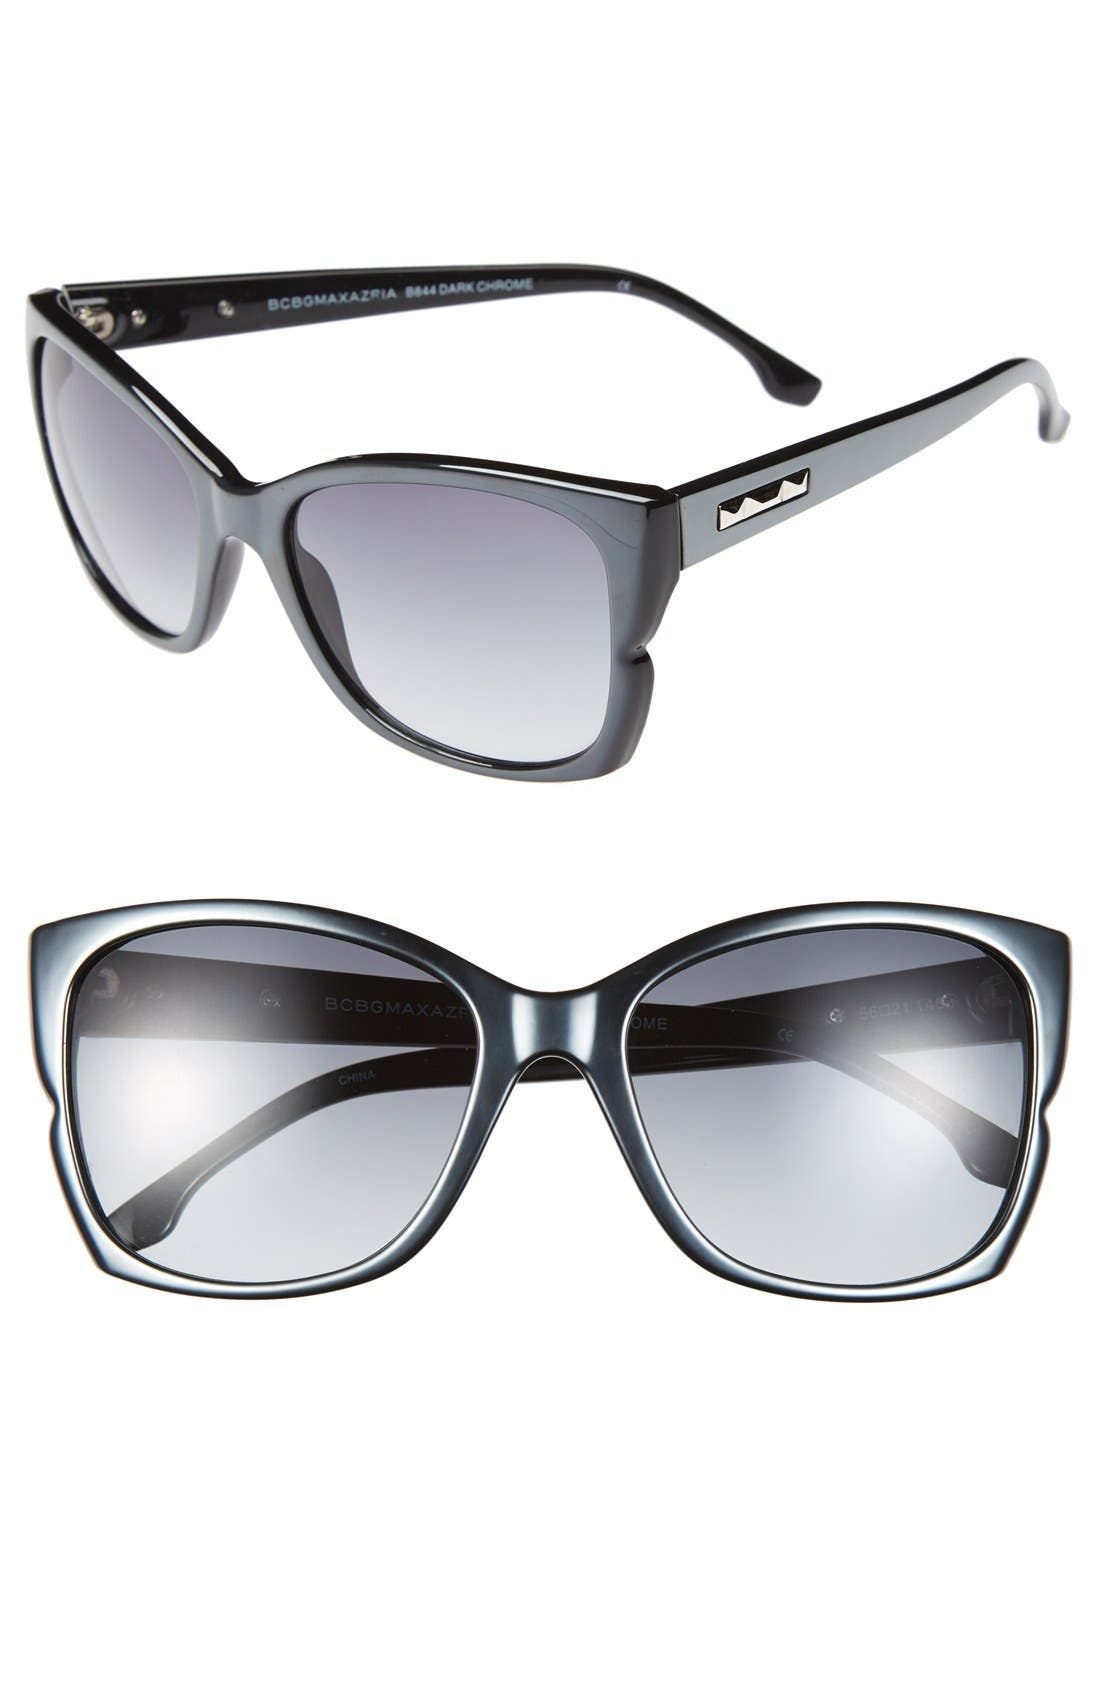 Alternate Image 1 Selected - BCBGMAXAZRIA 56mm Butterfly Sunglasses